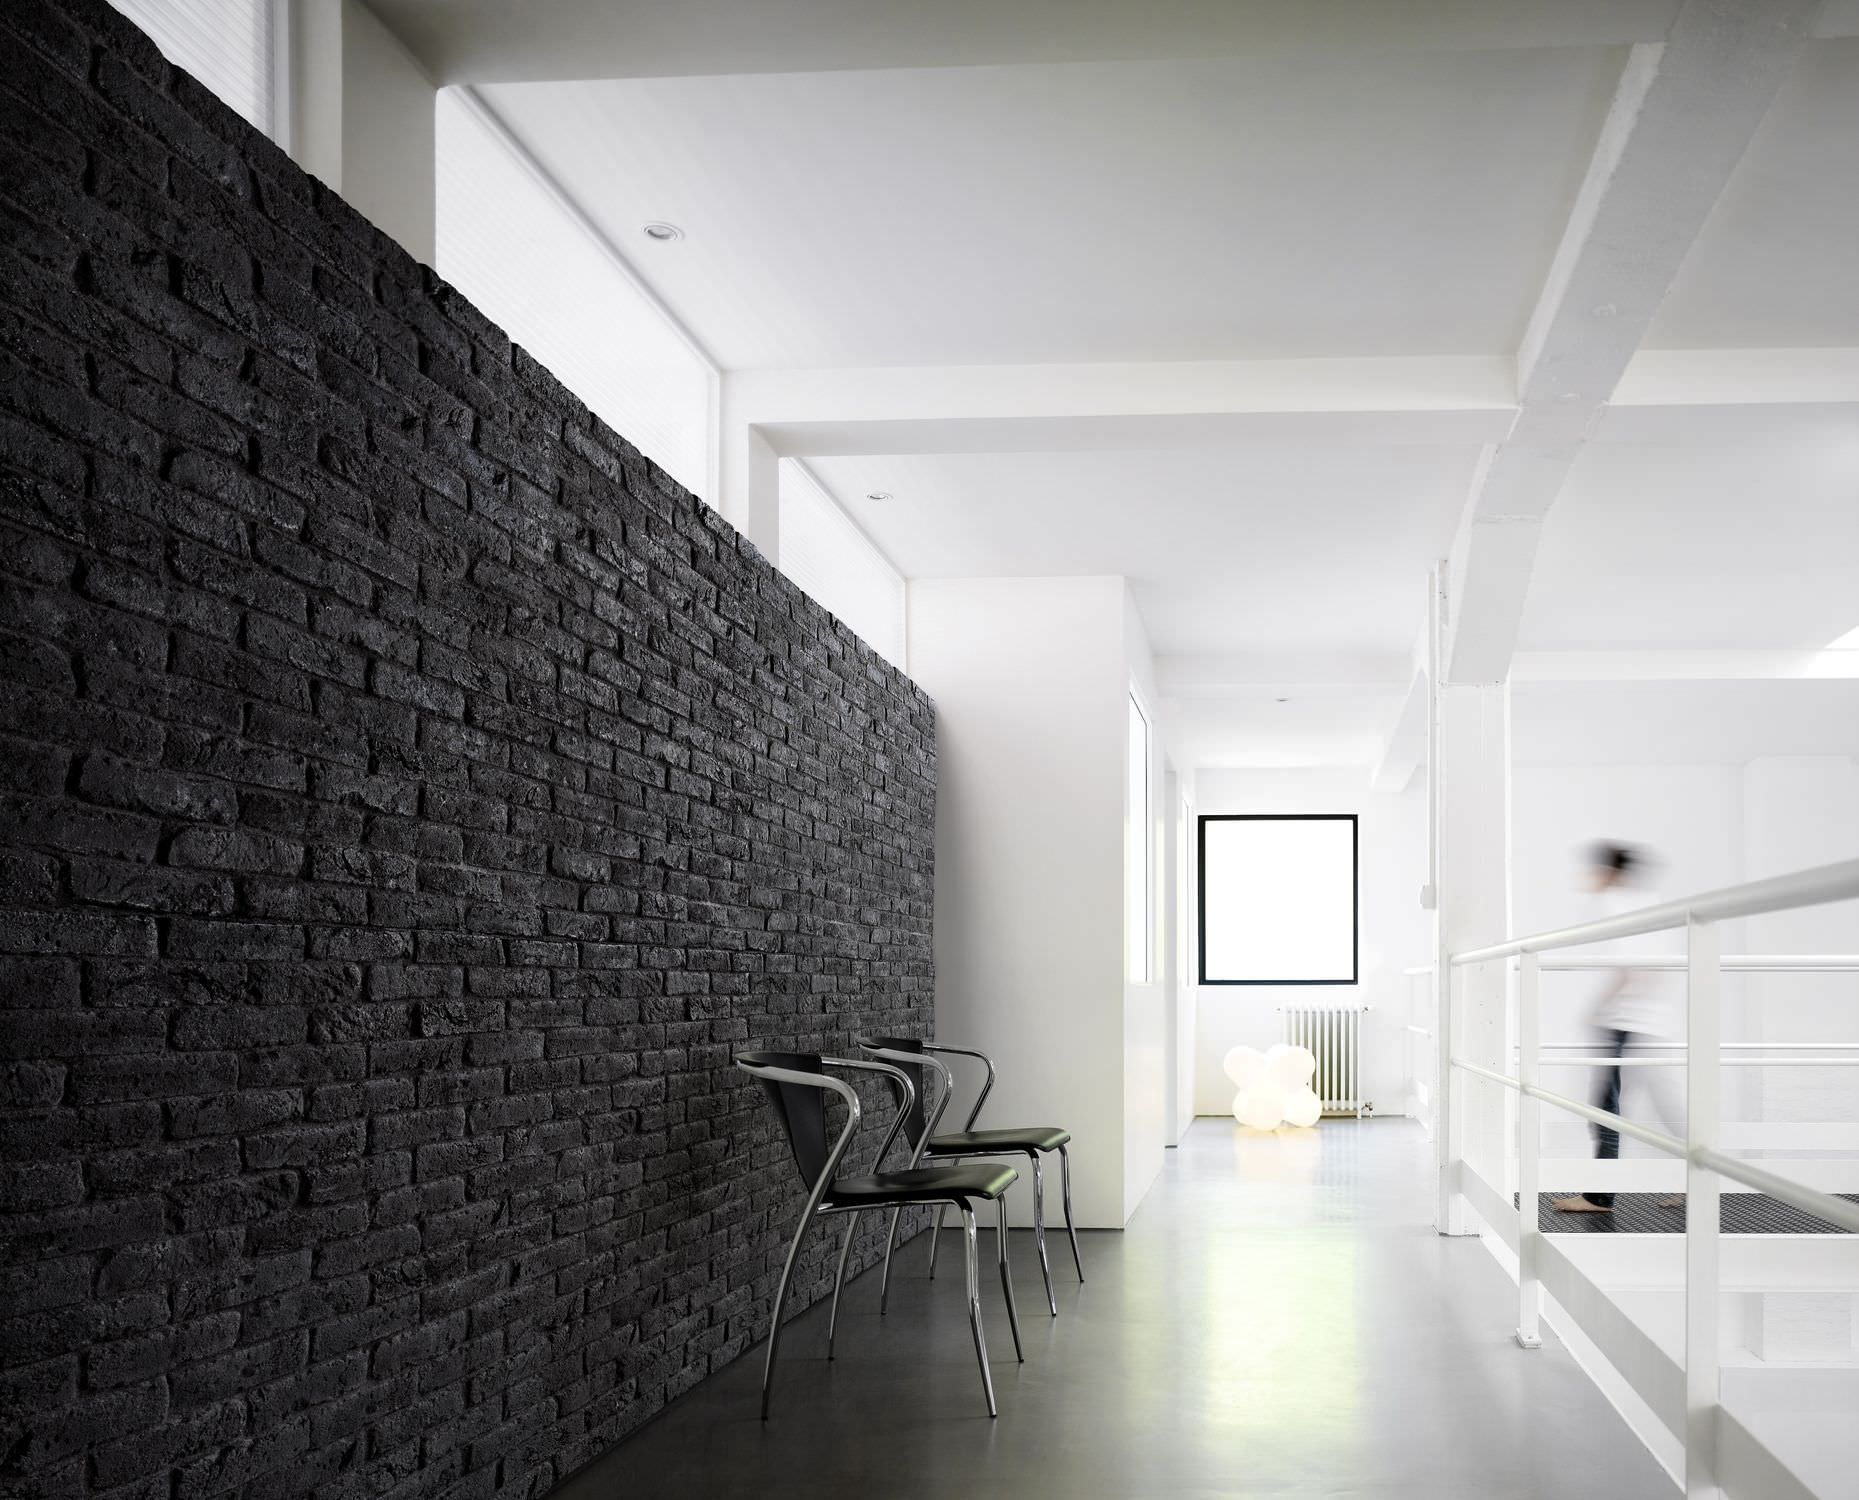 Brick Accent Wall Easy To Diy With Our Faux Brick Panels Get The Loft Look Without The Loft Faux Brick Panels Brick Wall Paneling Brick Wallpaper Kitchen